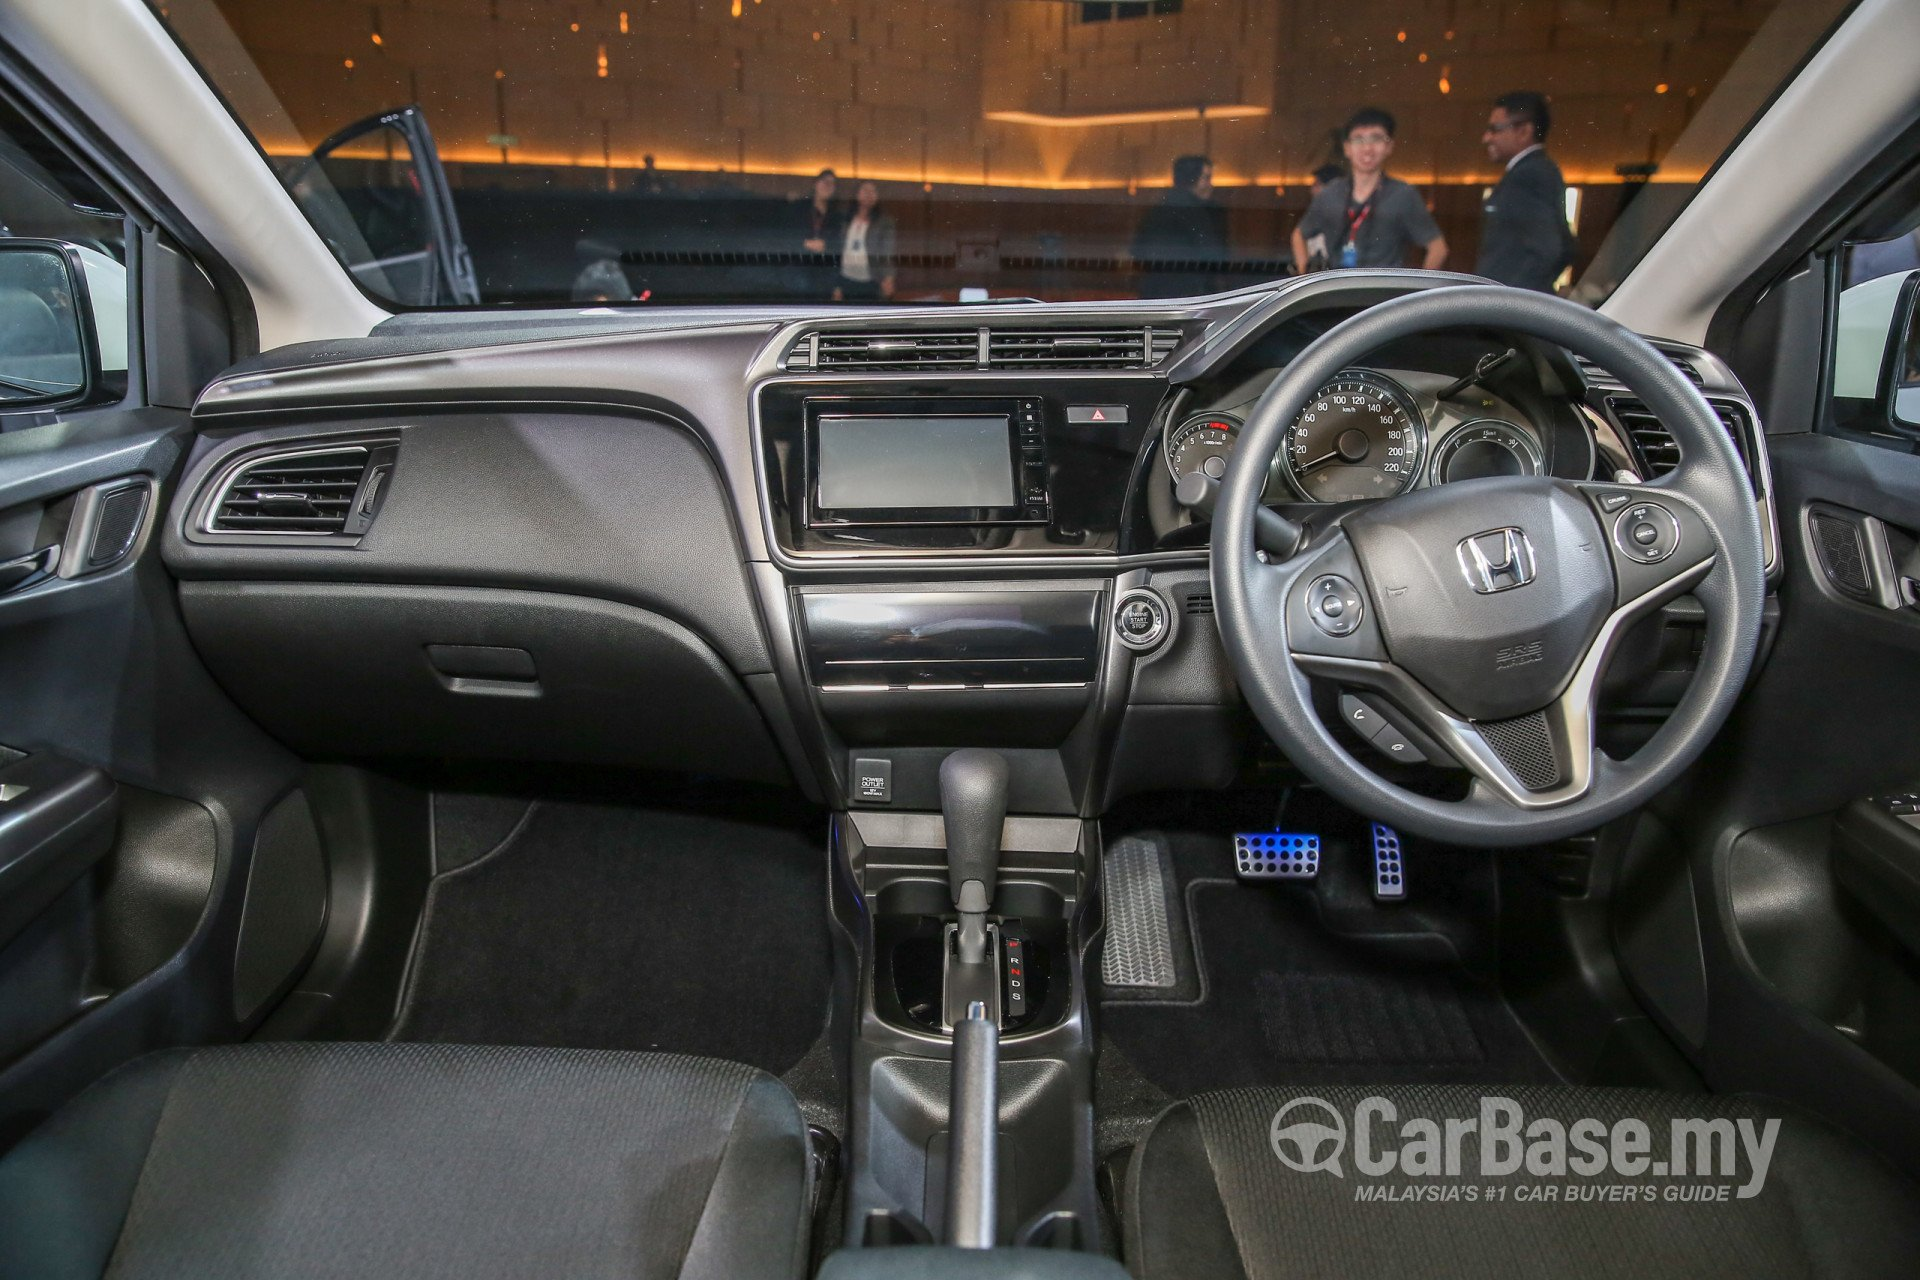 Car interior malaysia - Honda City Gm6 Facelift 2017 Interior Image 36602 In Malaysia Reviews Specs Prices Carbase My